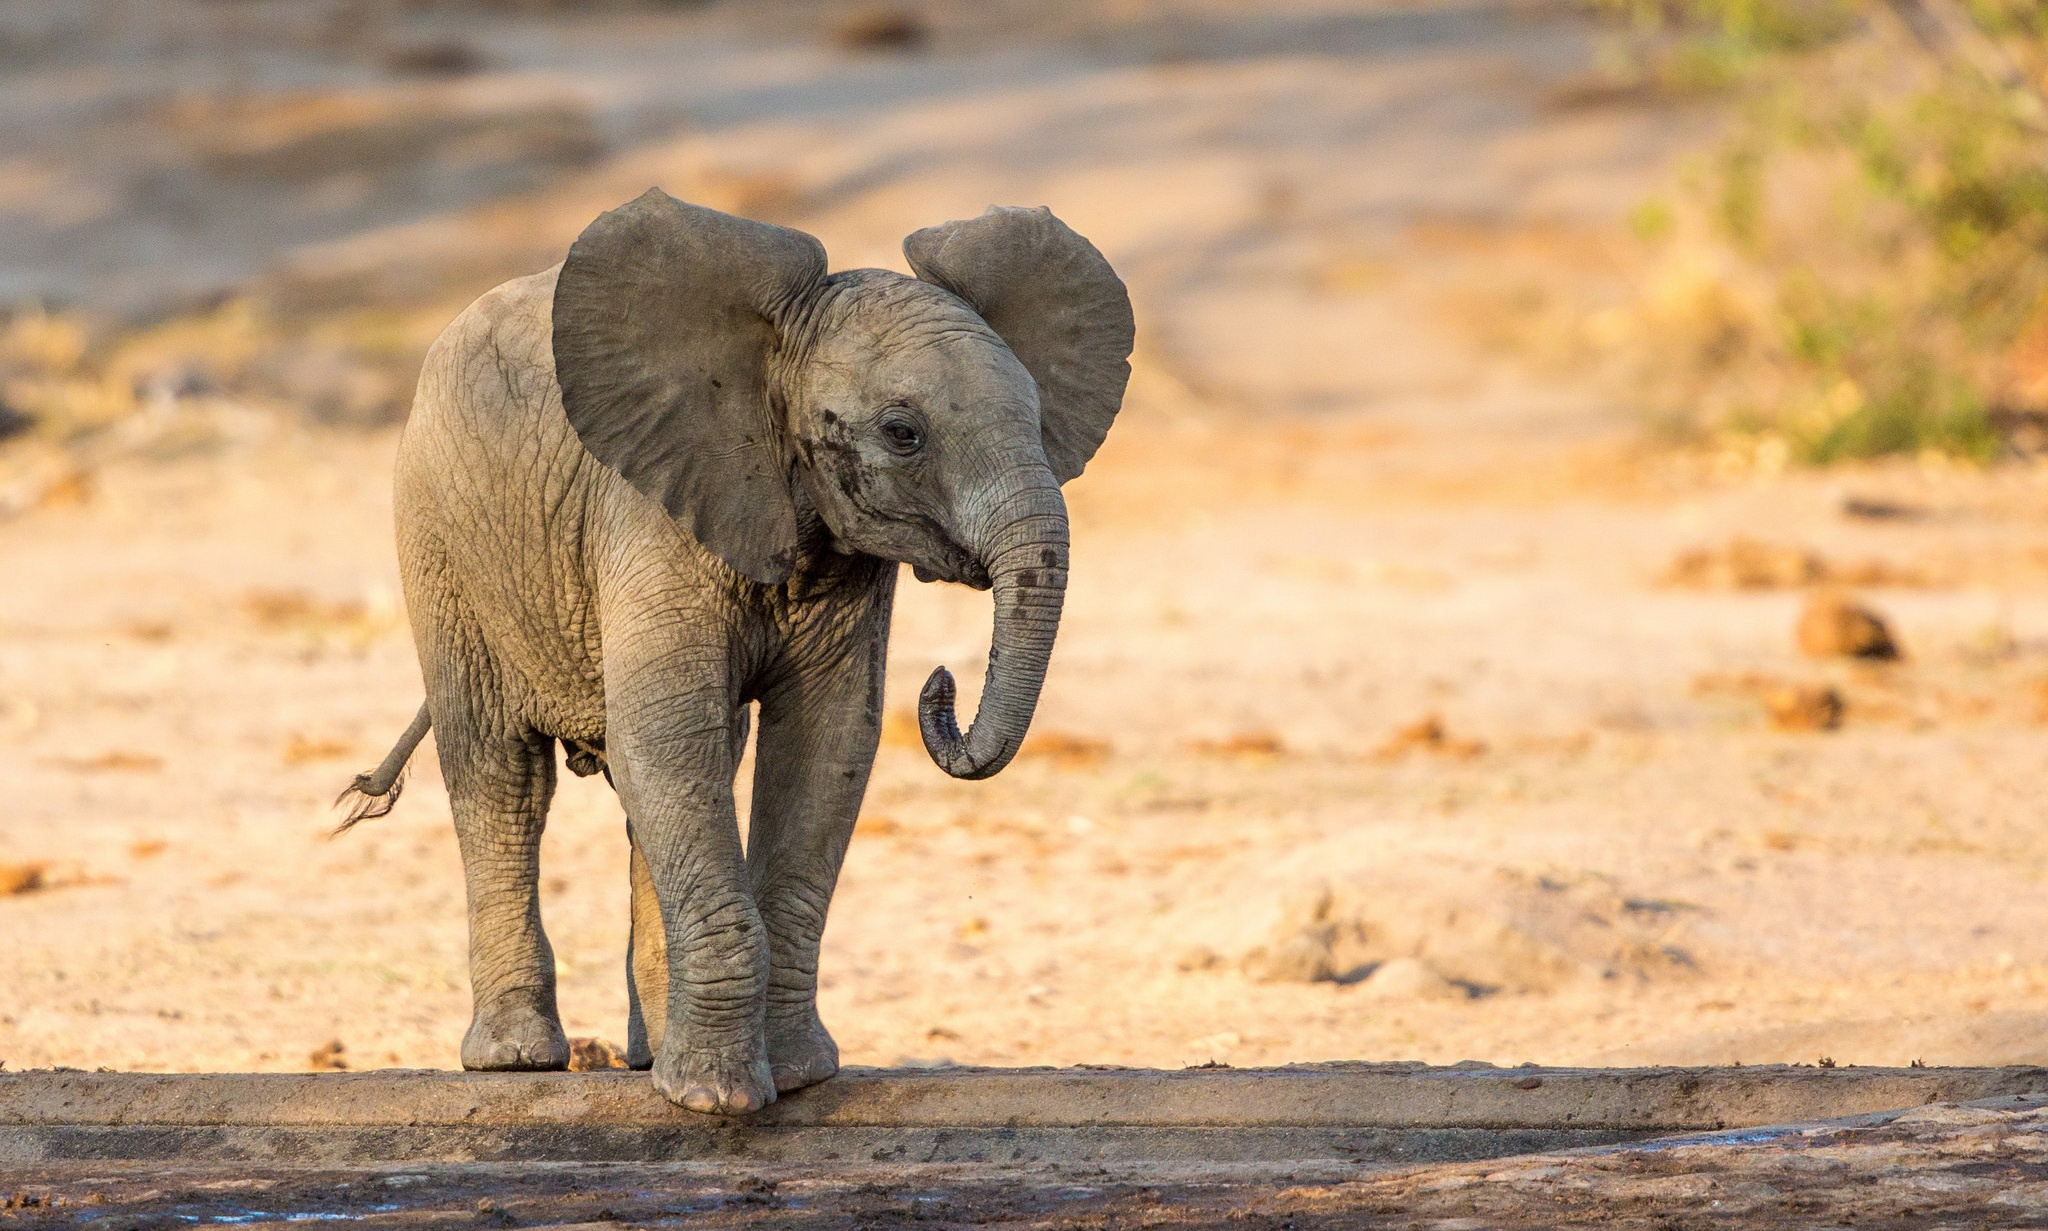 4K Little Elephants Wallpapers High Quality | Download Free